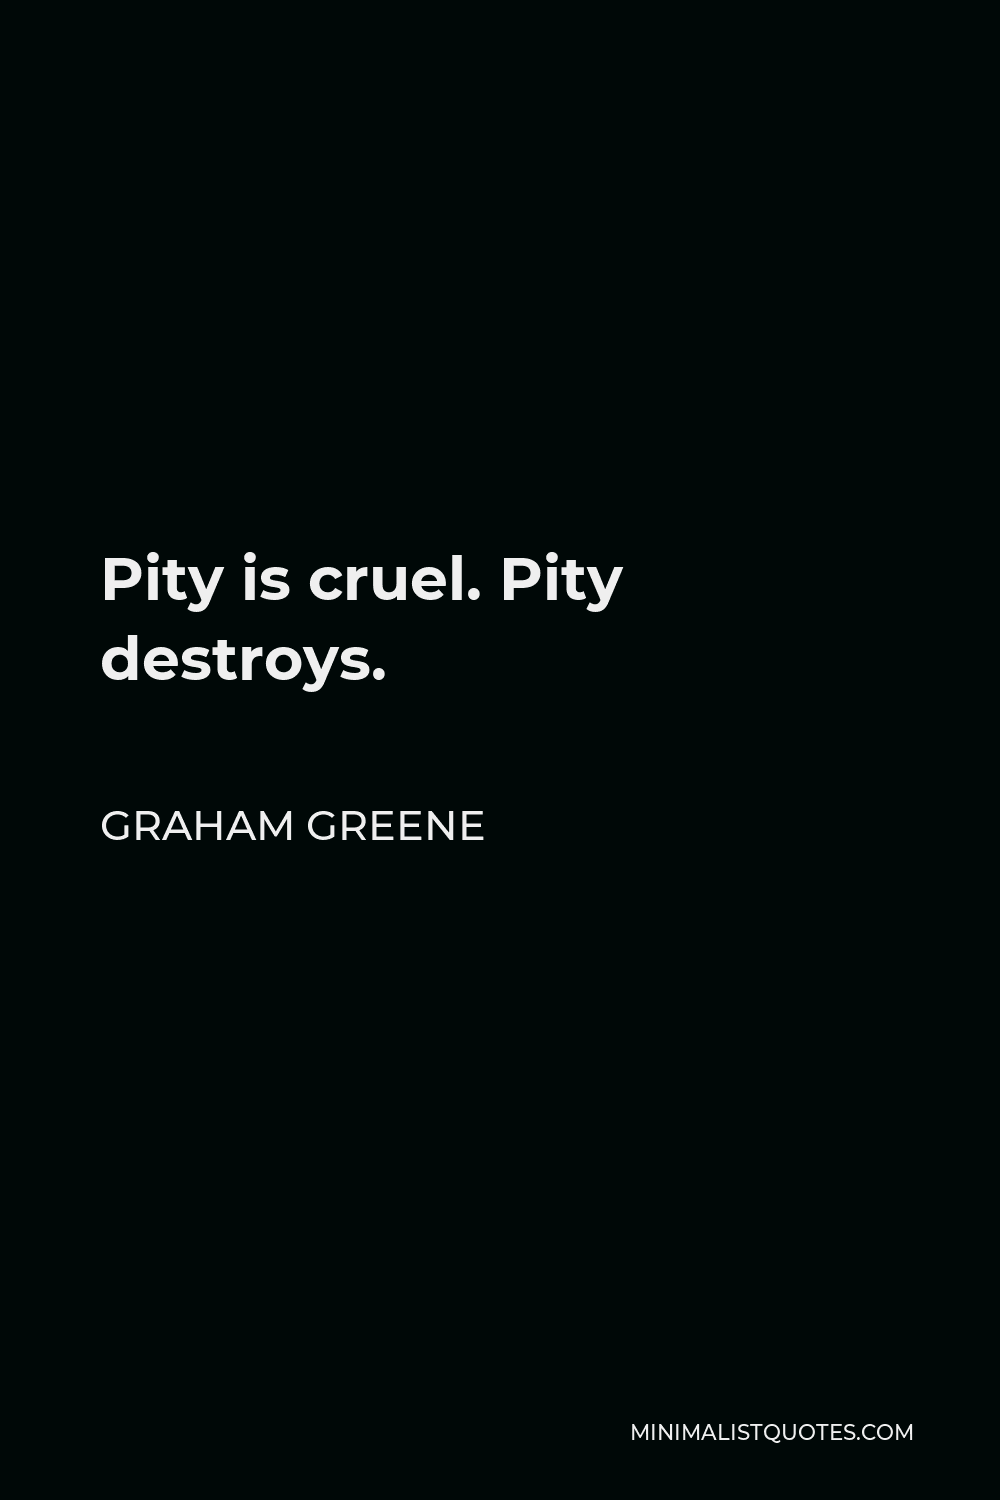 Graham Greene Quote - Pity is cruel. Pity destroys.